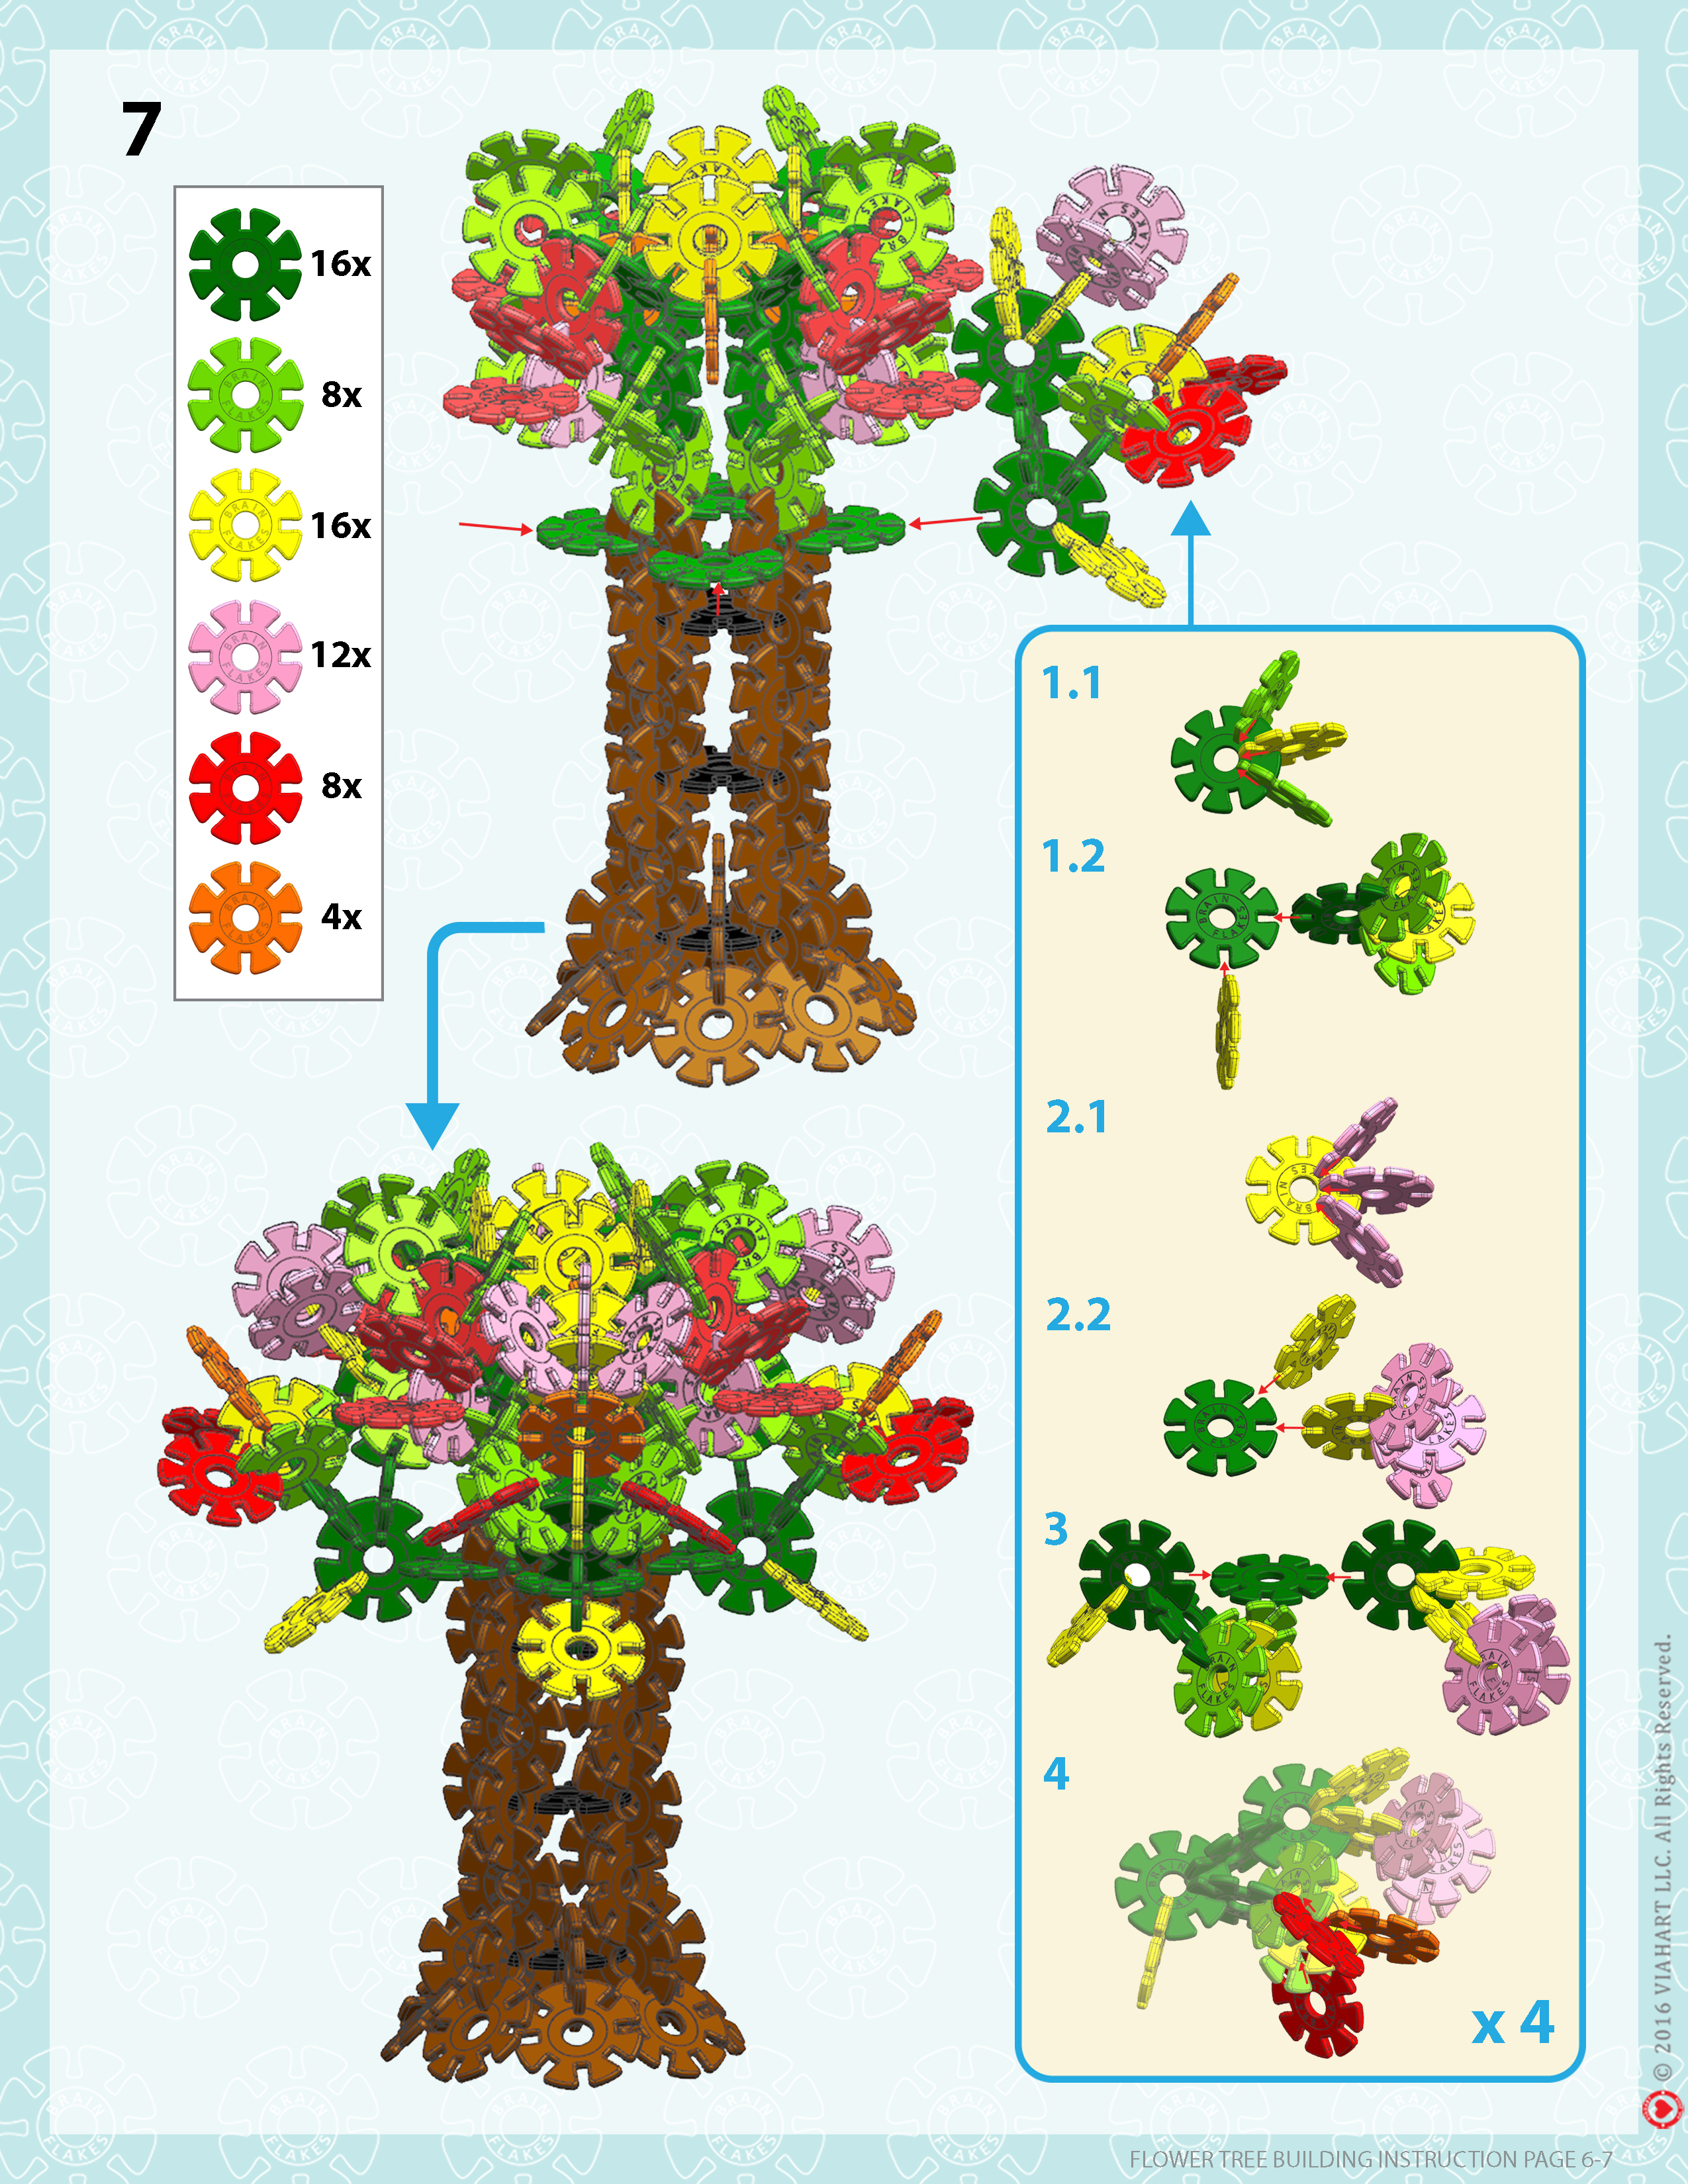 Brain Flakes Flower Tree Instrucions Page 6